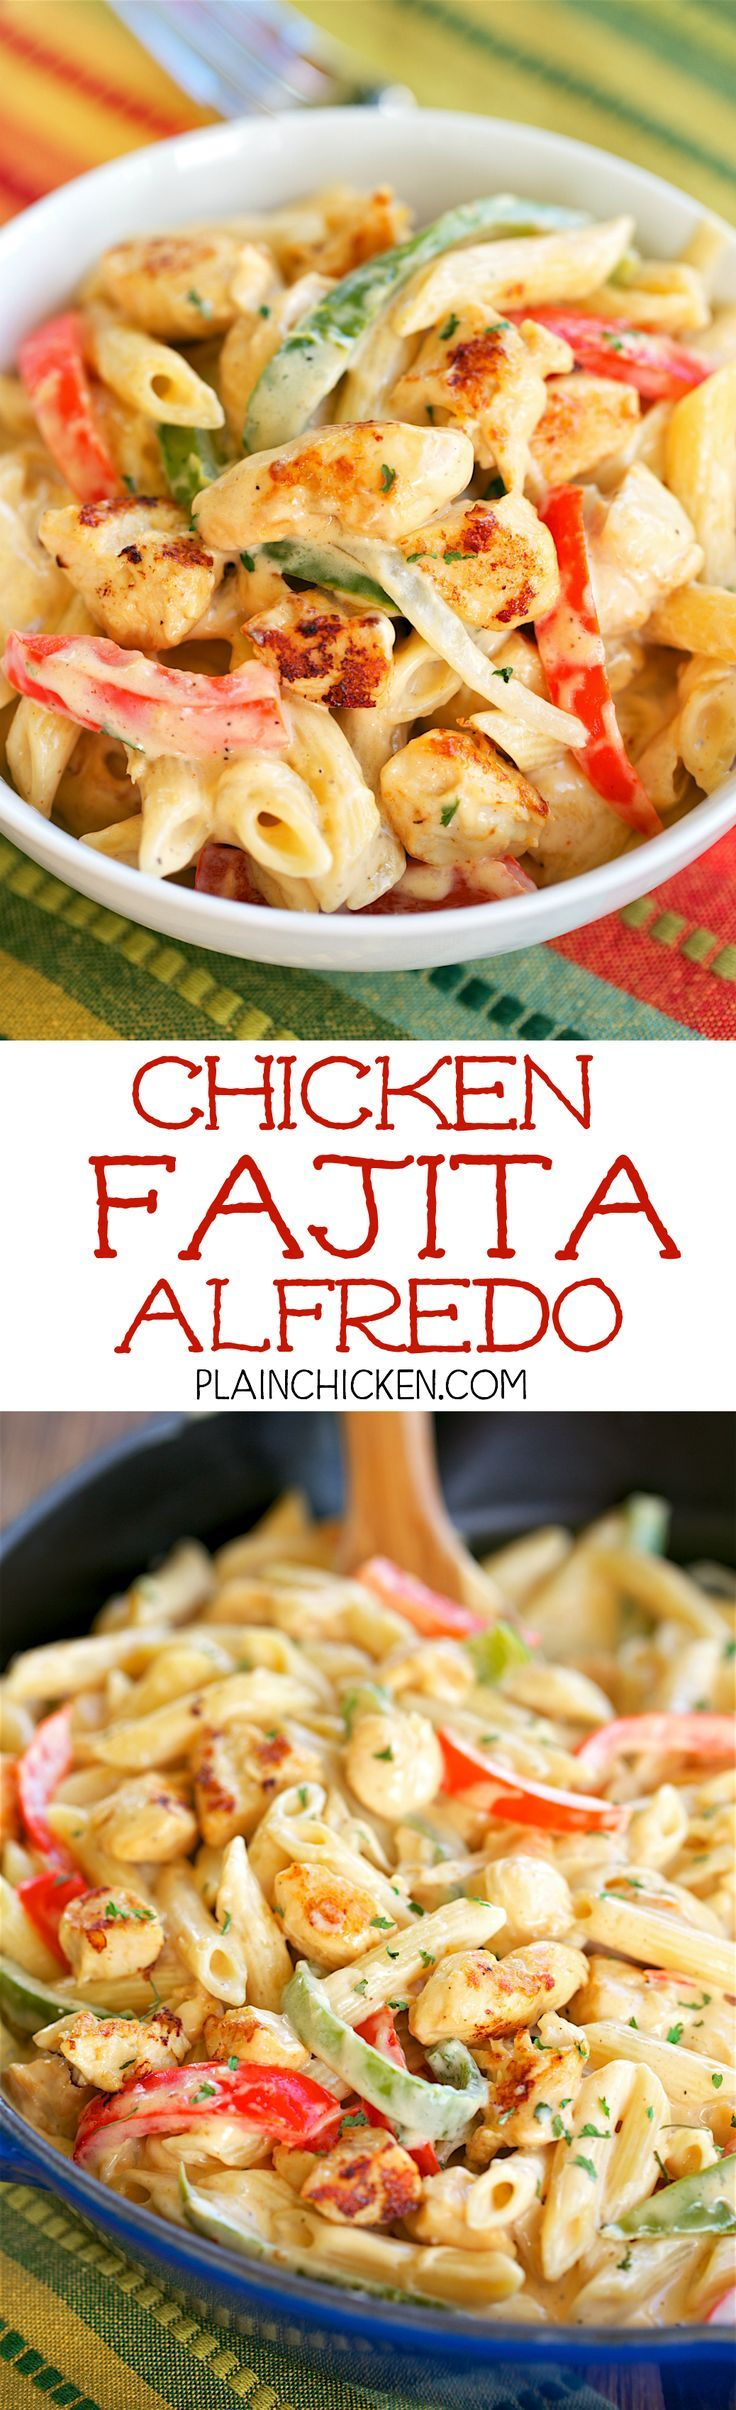 Chicken Fajita Alfredo - ready in 15 minutes! All the flavors of fajitas tossed with pasta and an easy homemade Alfredo sauce. Chicken onion, bell pepper, fajita seasoning, heavy cream, pasta and parmesan cheese. Everyone loved this!